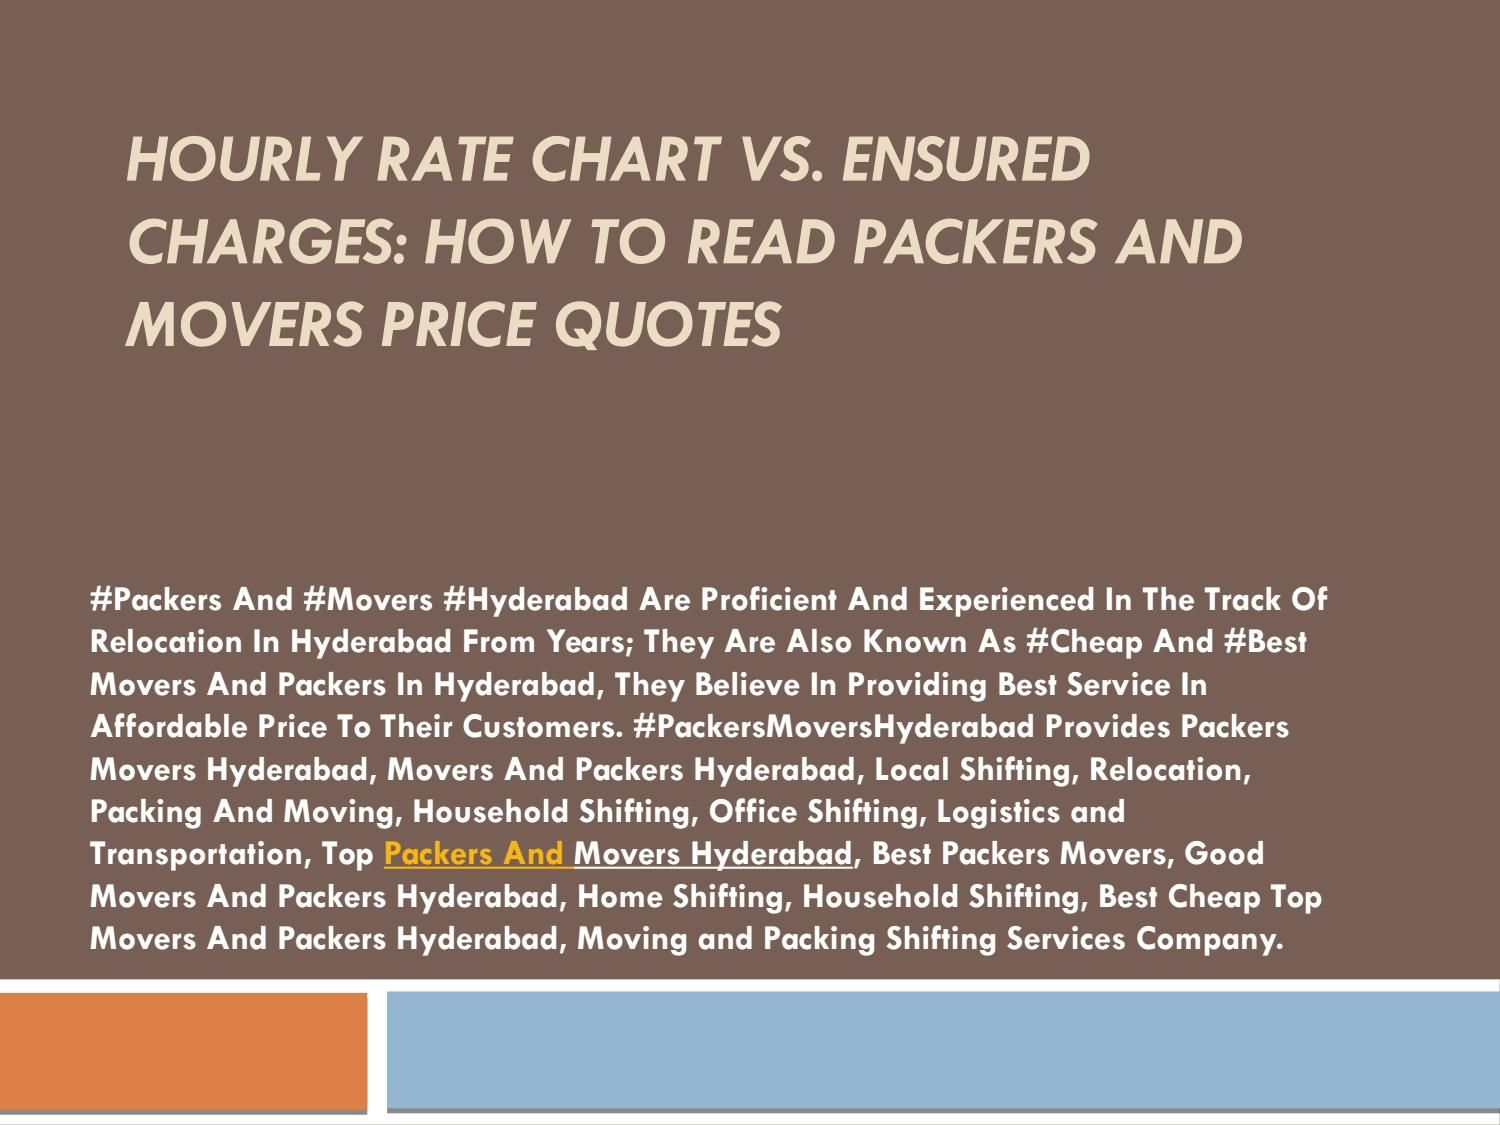 Movers Quote Hourly Rate Chart Vs Ensured Charges How To Read Packers And